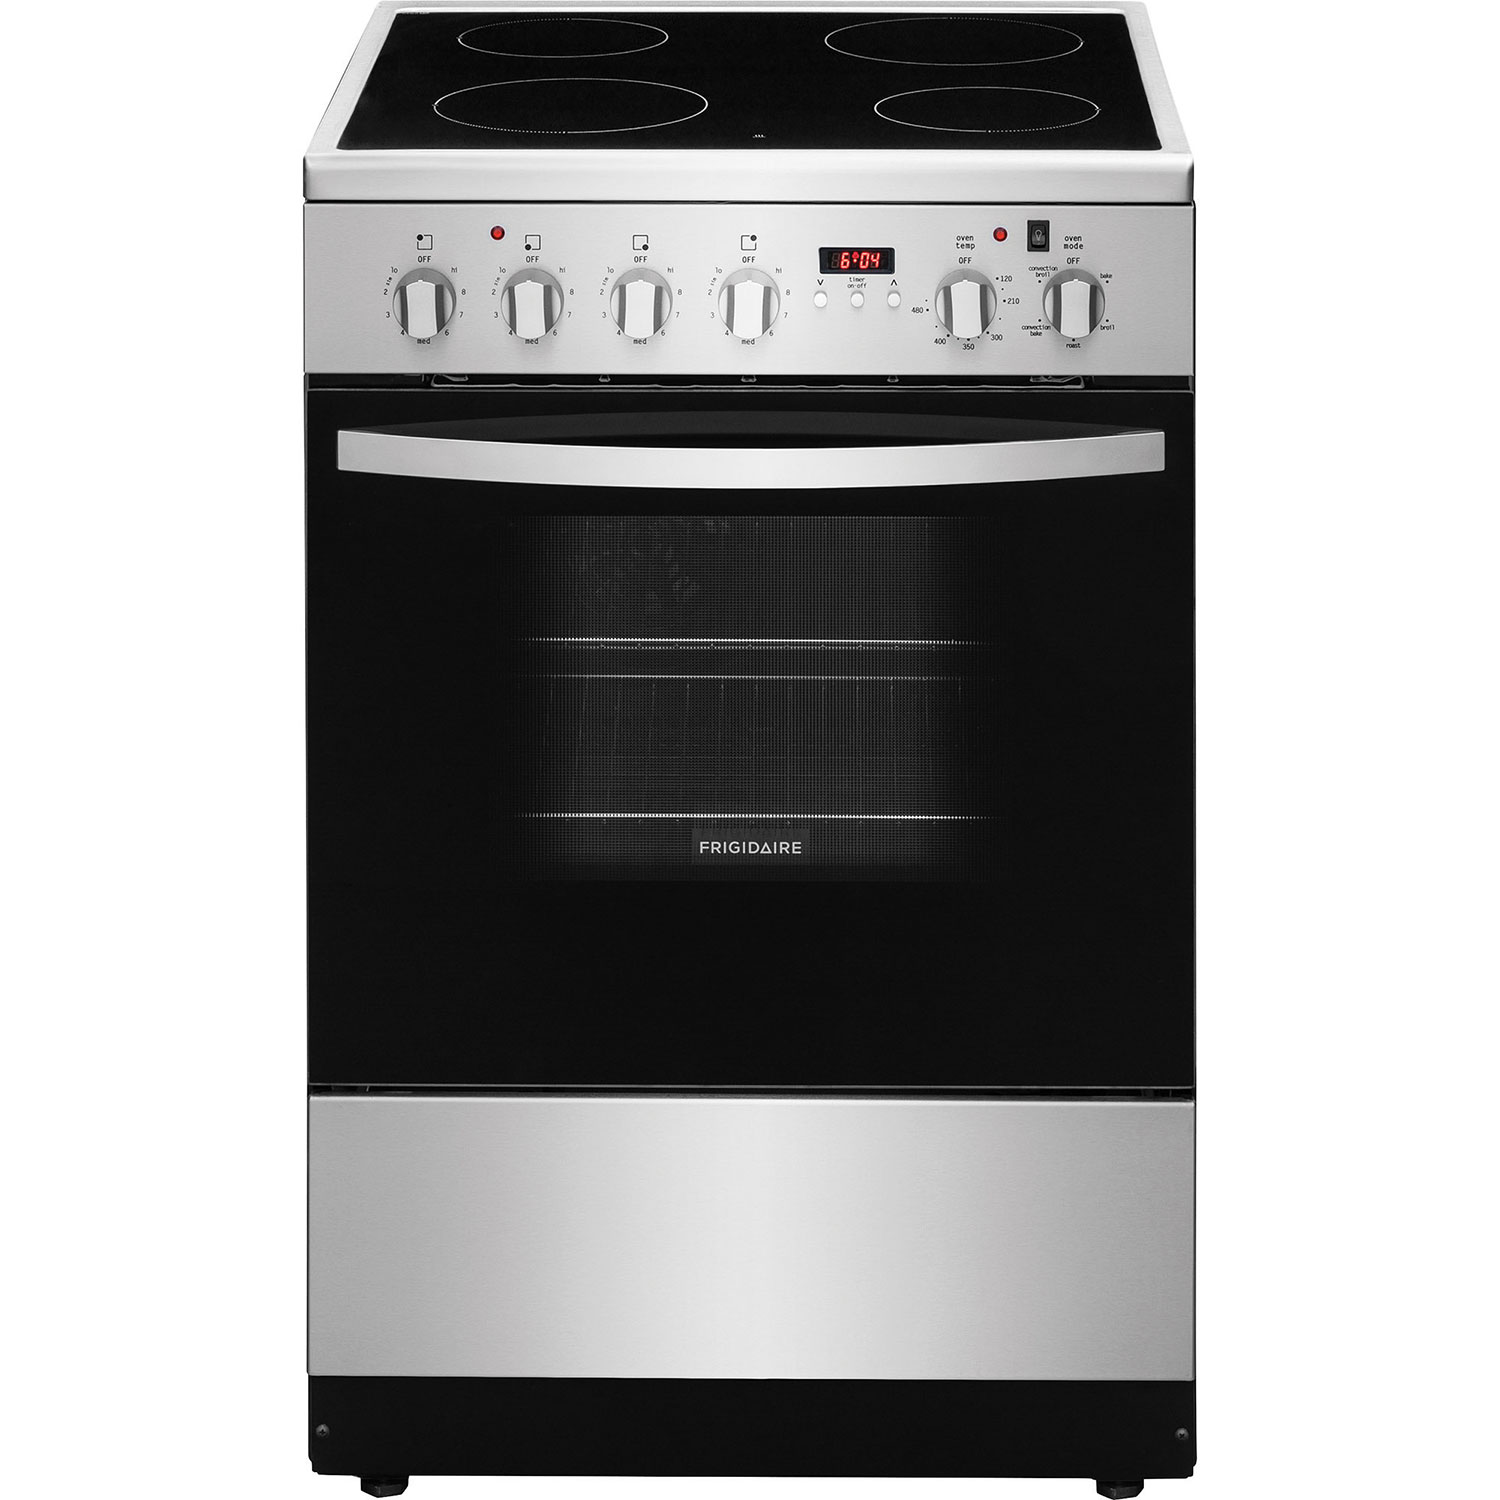 Frigidaire 24 1 9 Cu Ft Freestanding 4 Element Smooth Top Electric Range Stainless Steel Ranges Best Canada